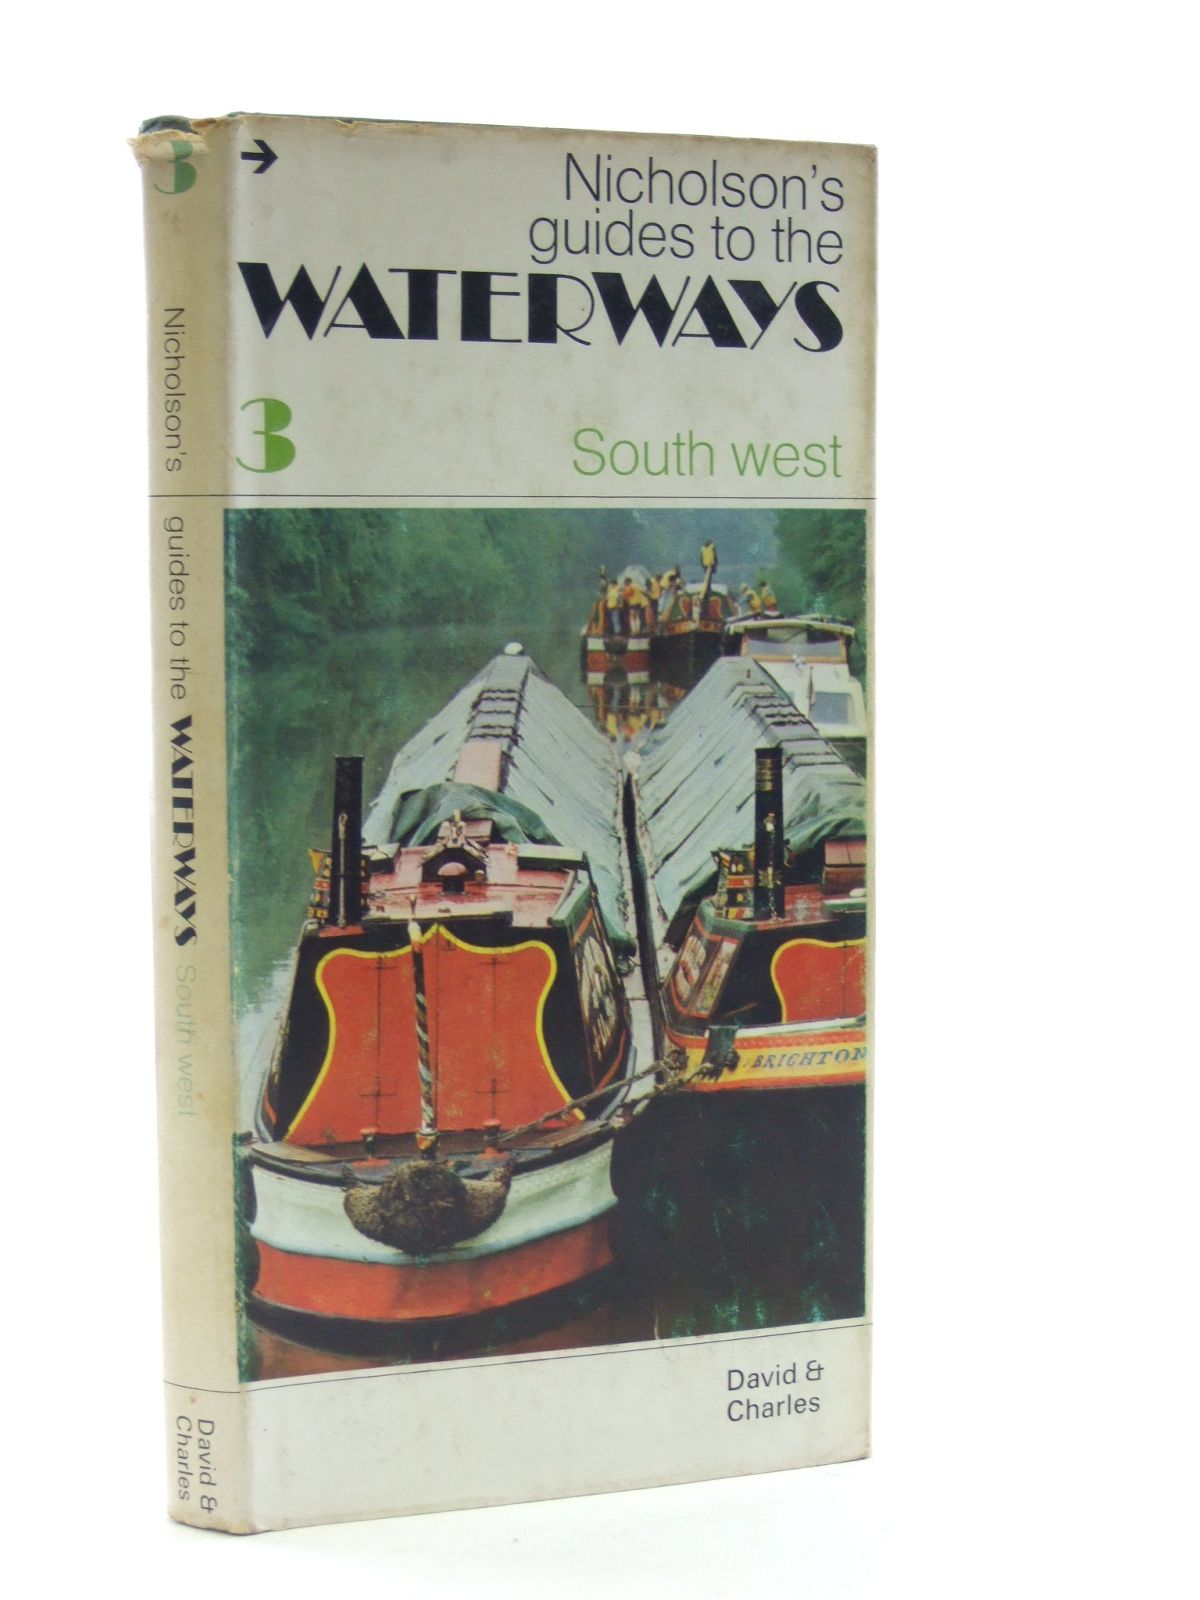 Photo of NICHOLSON'S GUIDES TO THE WATERWAYS No. 3 SOUTH WEST published by British Waterways Board, Robert Nicholson Publications (STOCK CODE: 1603354)  for sale by Stella & Rose's Books